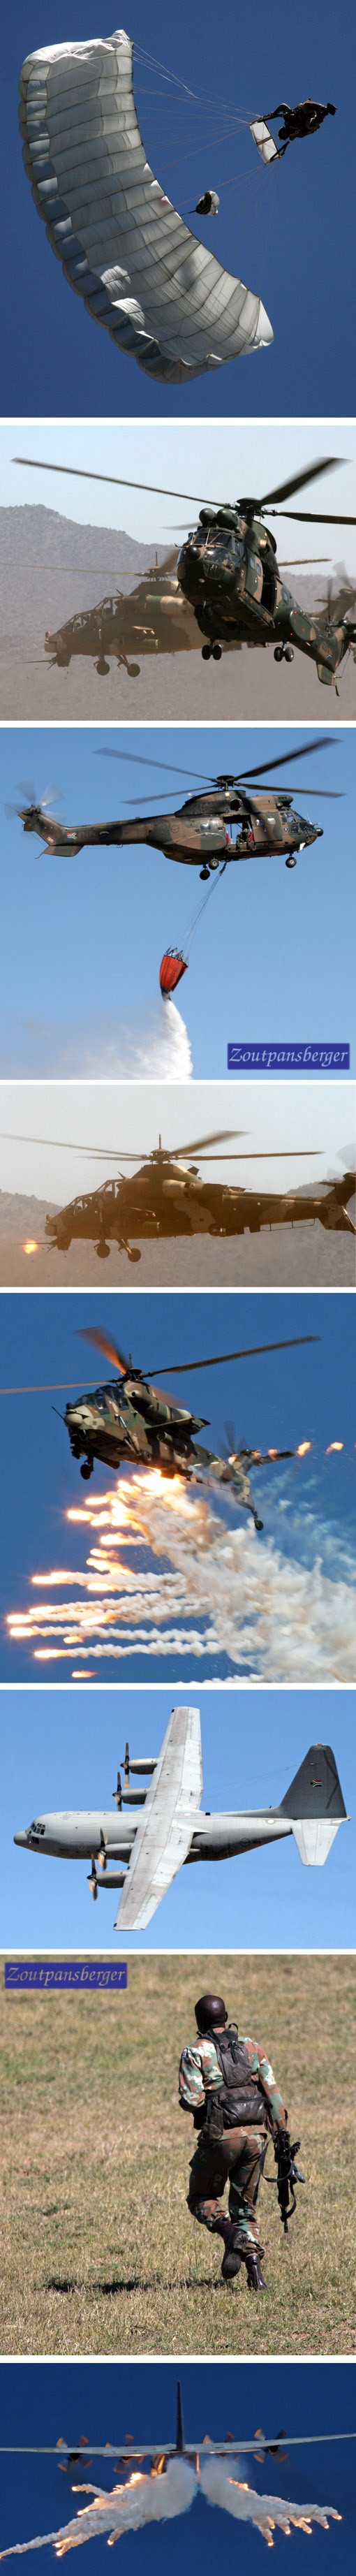 The South African Air Force (SAAF) recently held their first air capability demonstration of the year at the Roodewal bombing range. You can also view video footage of the day.